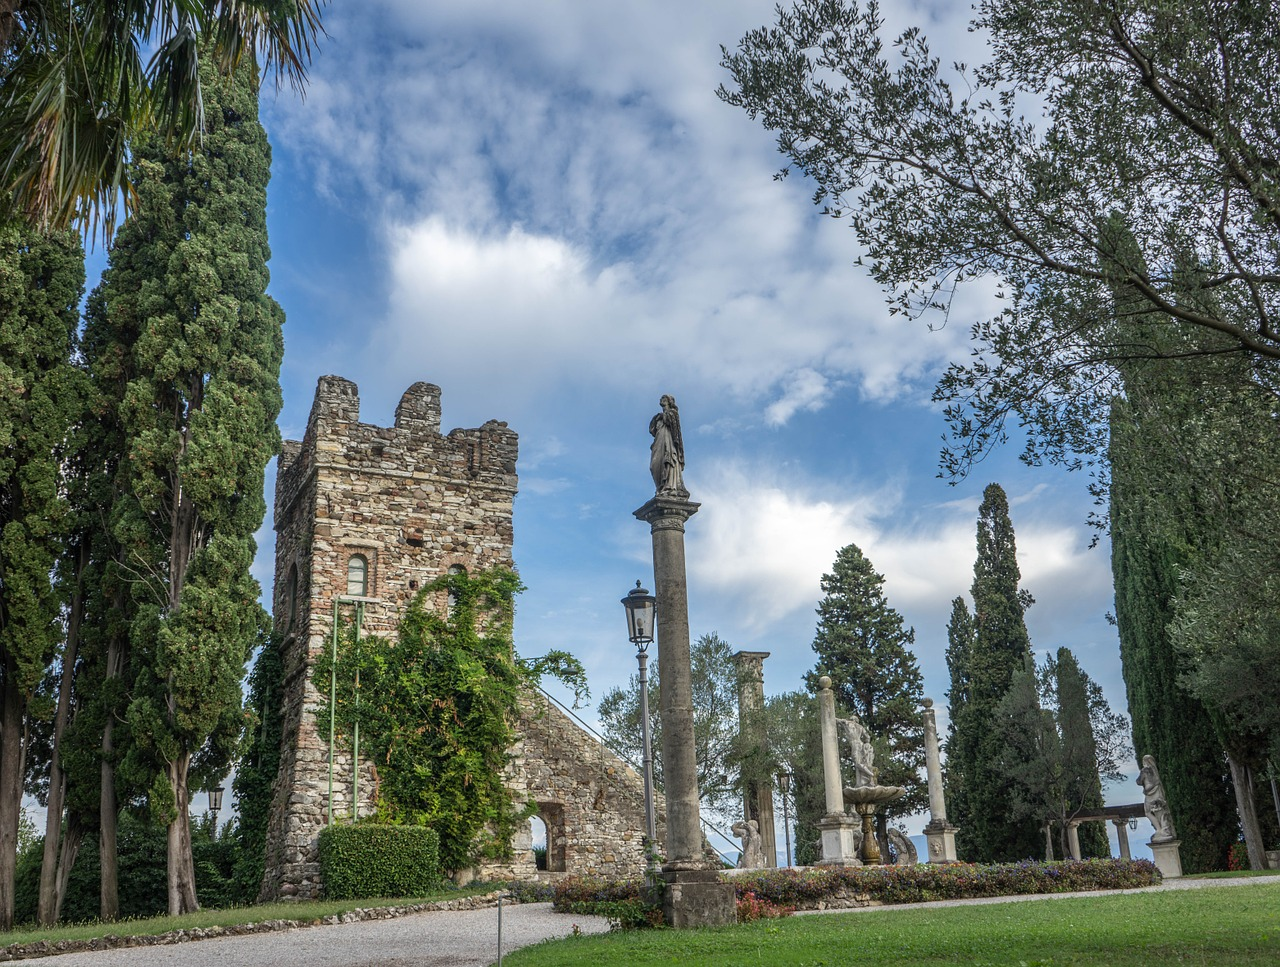 villa cortine,sirmione,garden,landscape,italy,nature,outdoors,scenic,sky,summer,statue,flowers,sunny,sky clouds,monument,green,environment,clouds,sunny sky,blue,sunlight,floral,free pictures, free photos, free images, royalty free, free illustrations